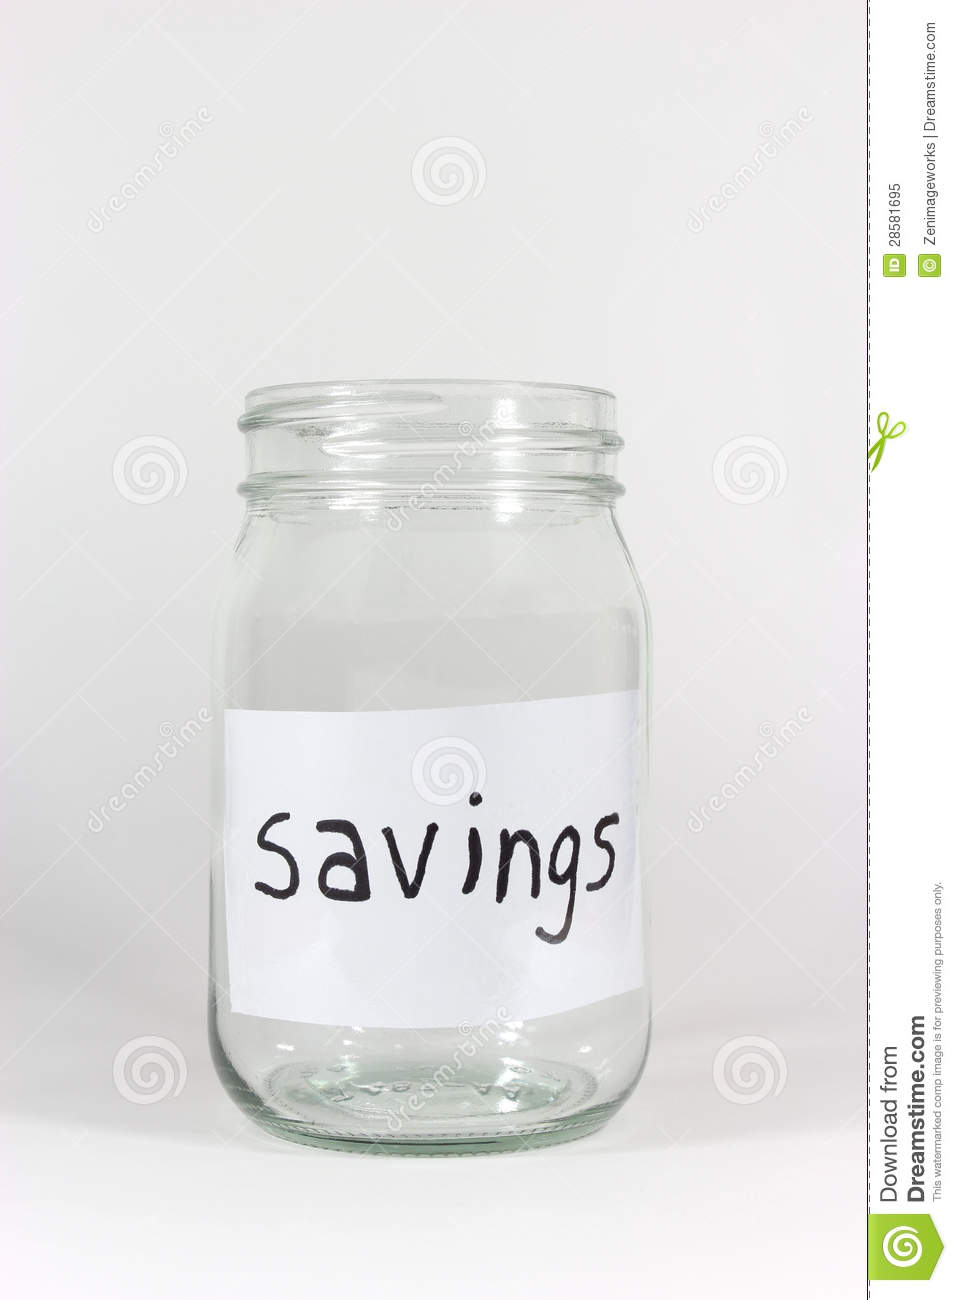 Empty Savings Jar Royalty Free Stock Photo - Image: 28581695